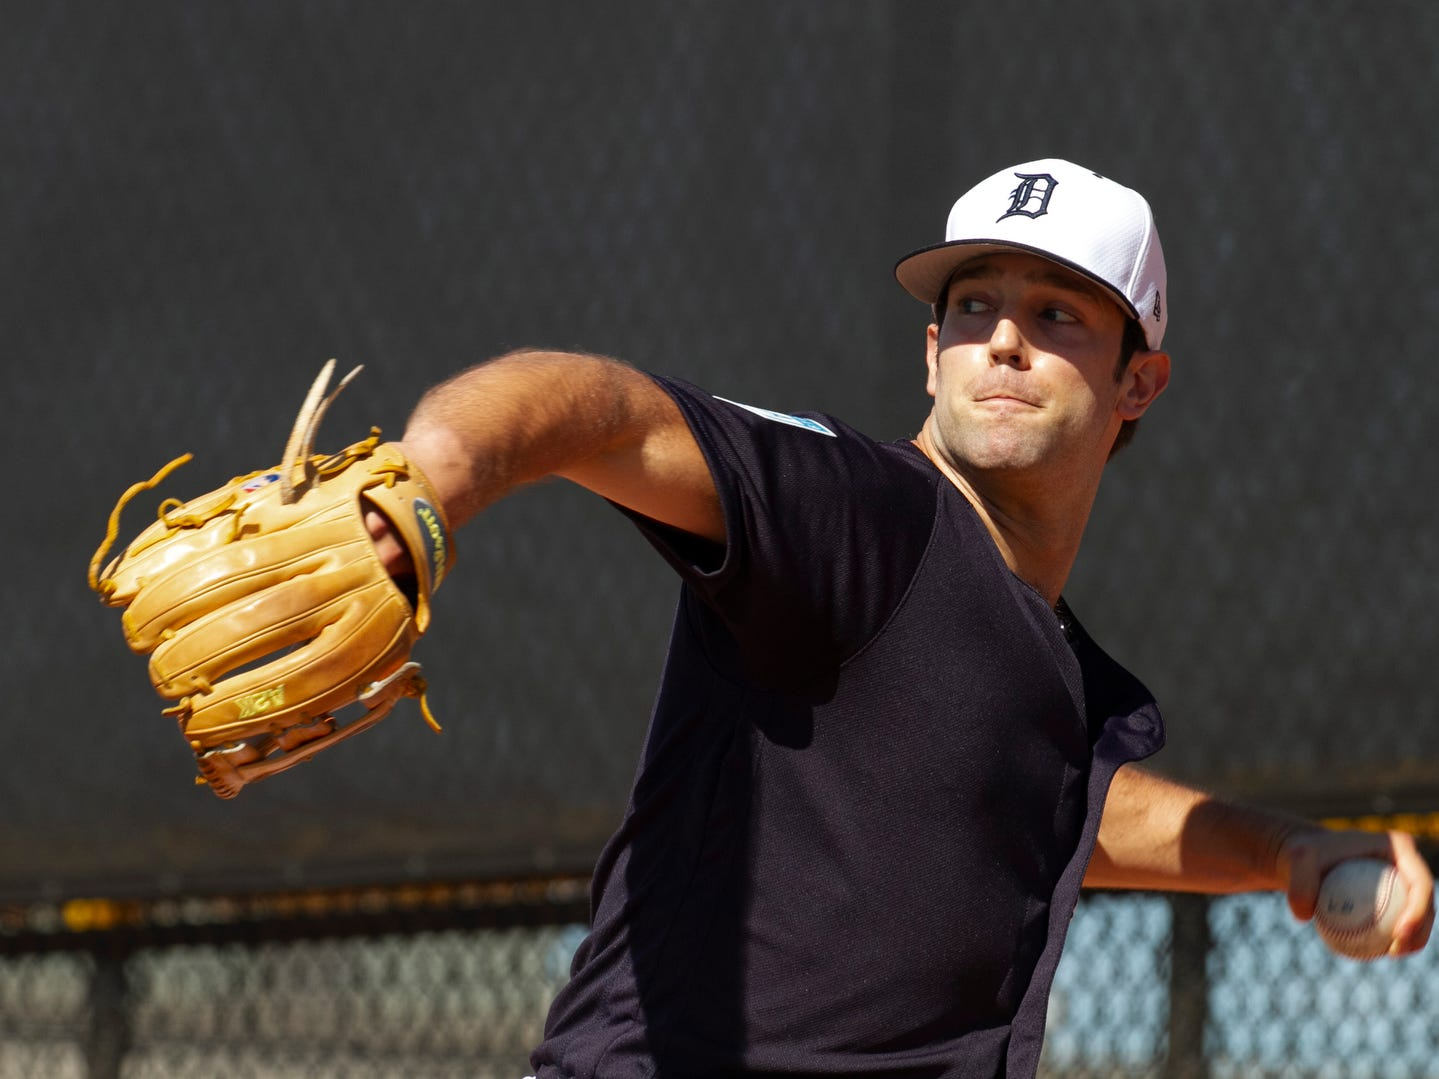 Detroit Tigers pitcher Daniel Norris throws a pitch.